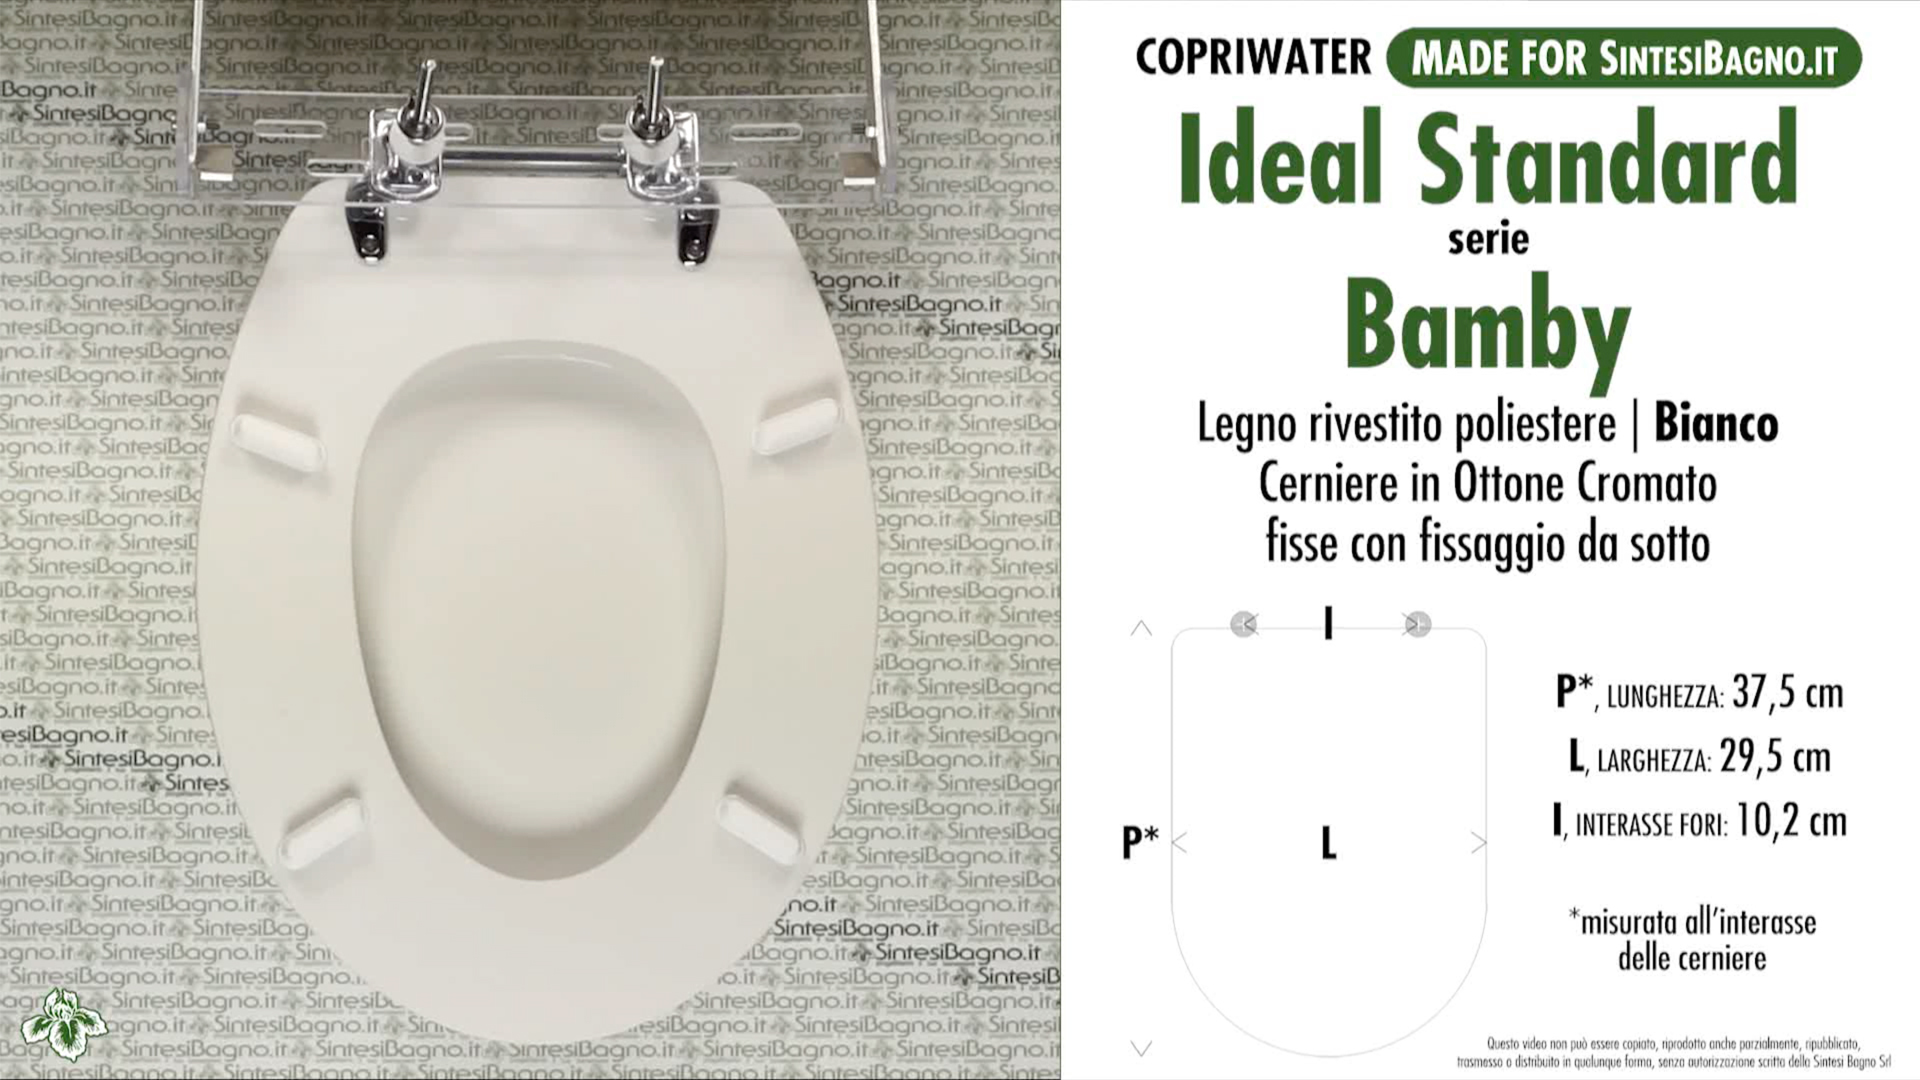 Collezione bamby di ideal standard ricambio copriwater for Ideal standard diagonal